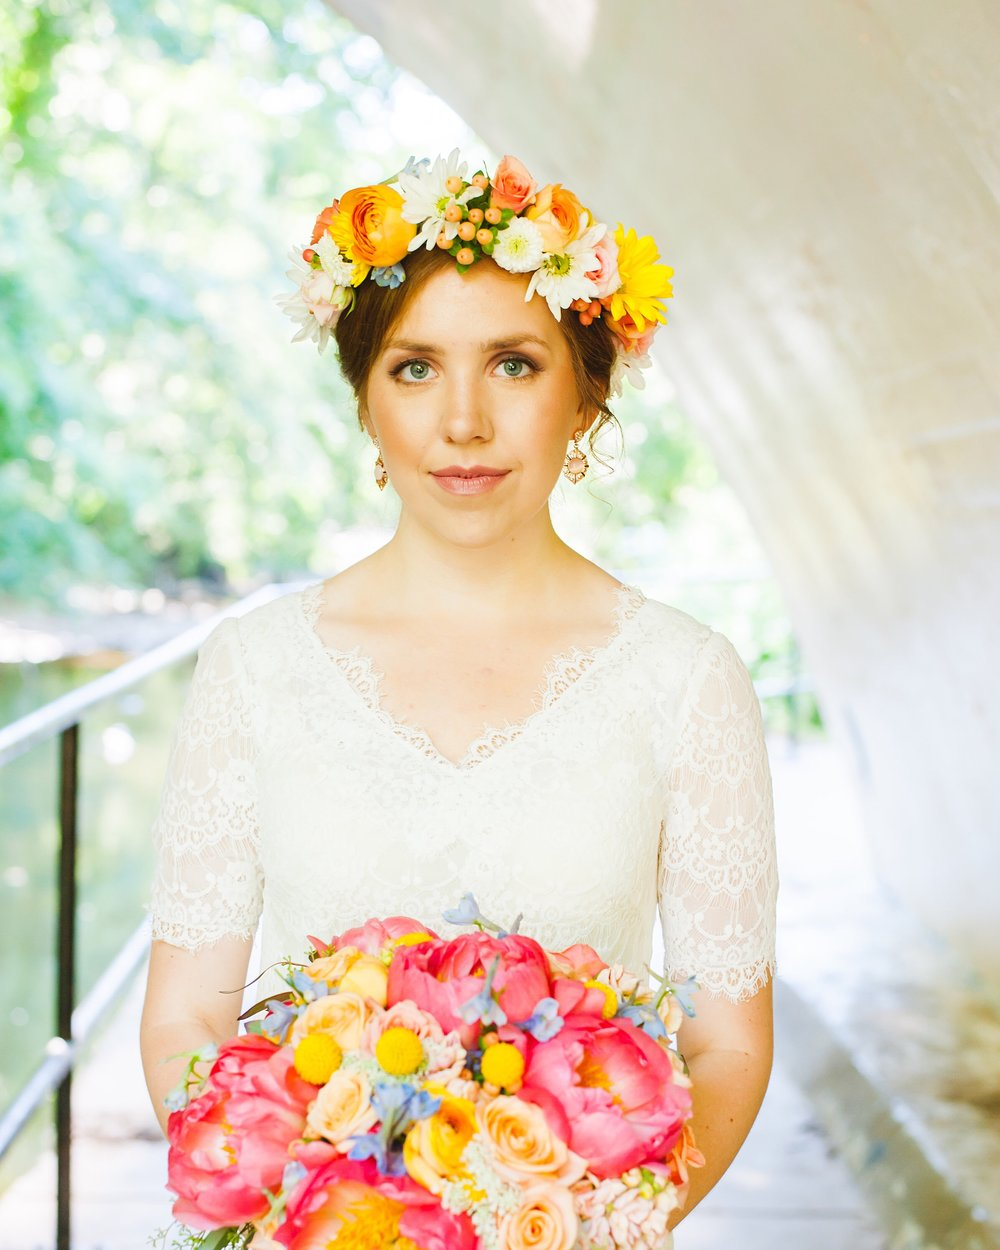 Bride with Summer Flowers